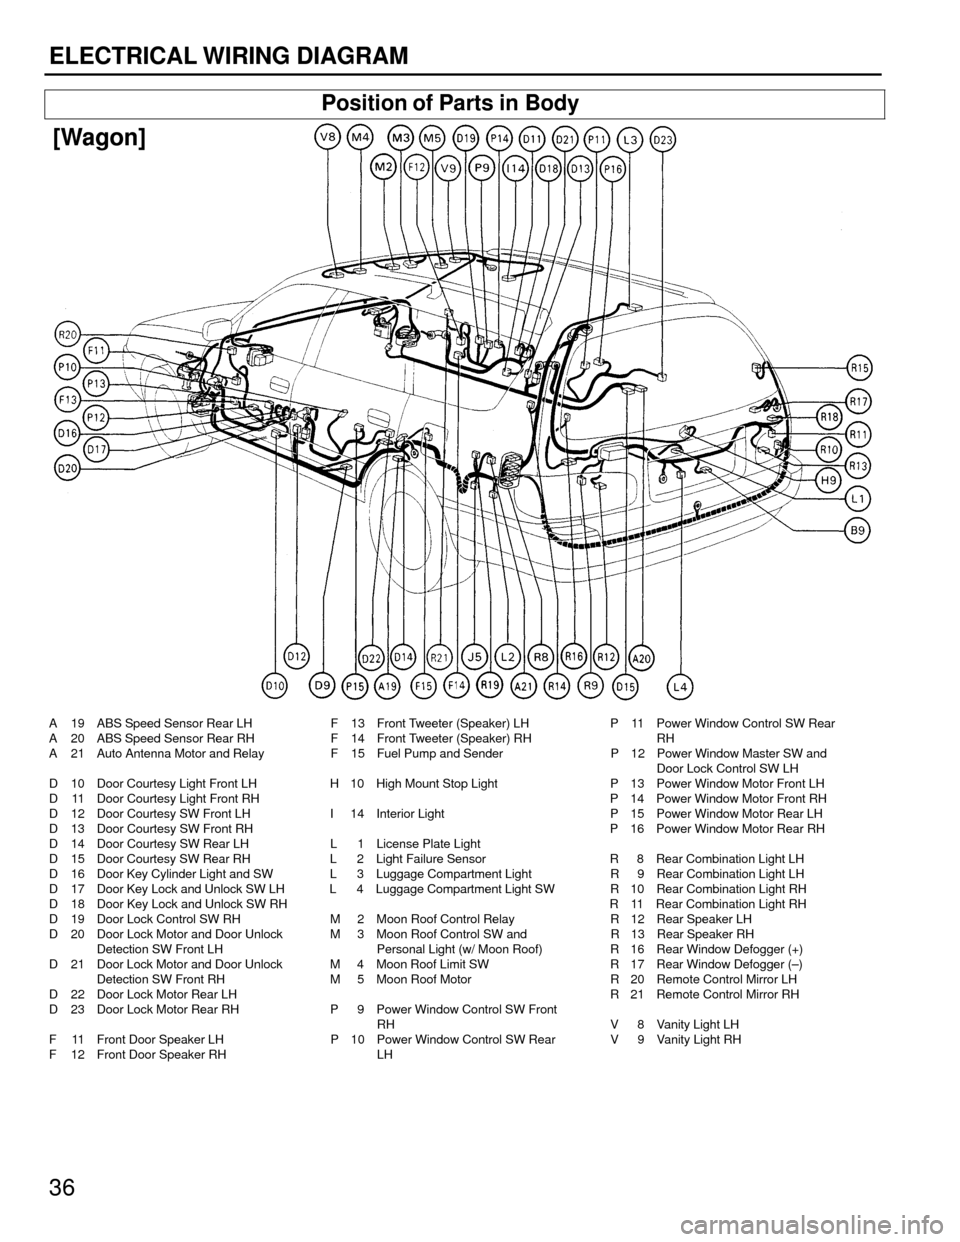 medium resolution of toyota camry 1994 xv10 4 g wiring diagrams workshop manual page 36